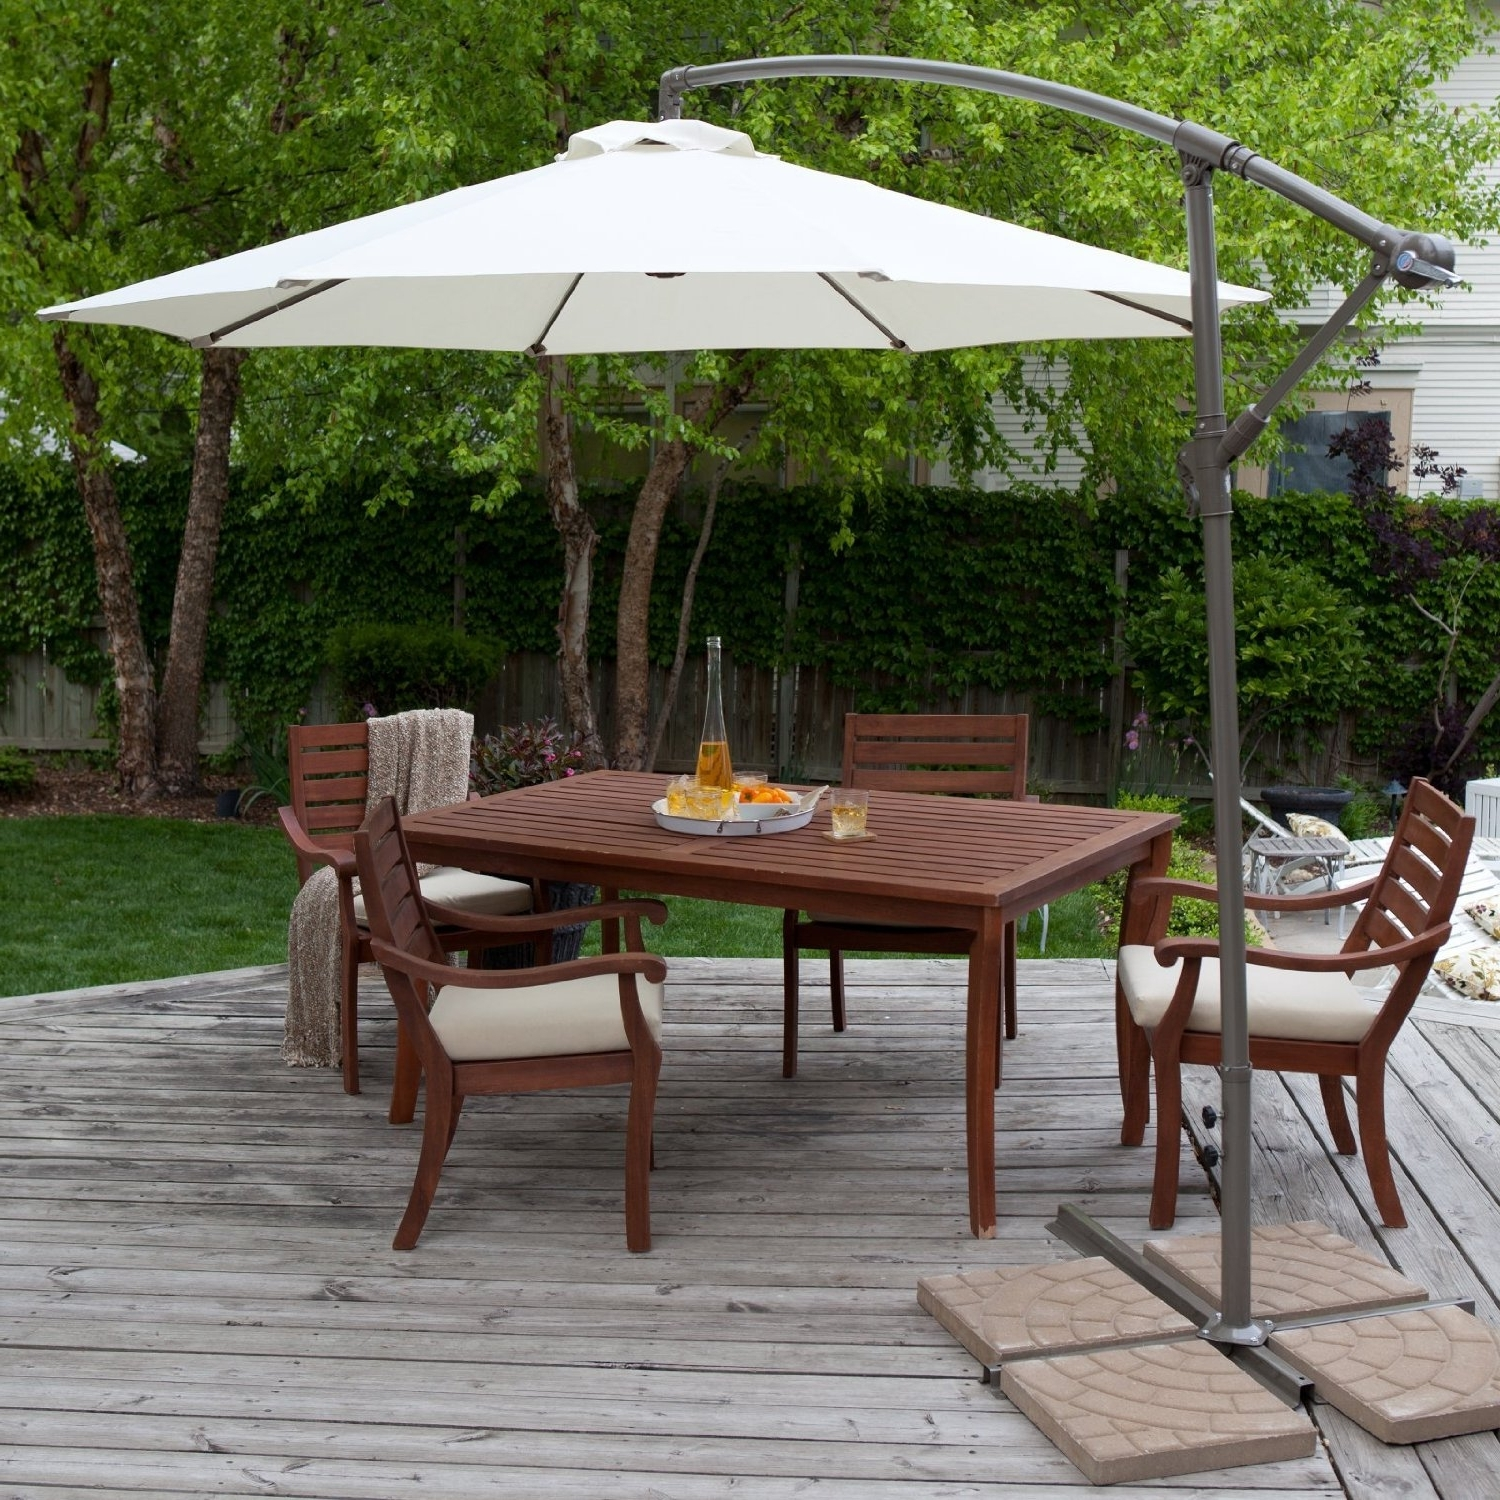 Interior : Patio Table Chairs Umbrella Set New Furniture Sets With In Popular Small Patio Tables With Umbrellas (Gallery 9 of 20)